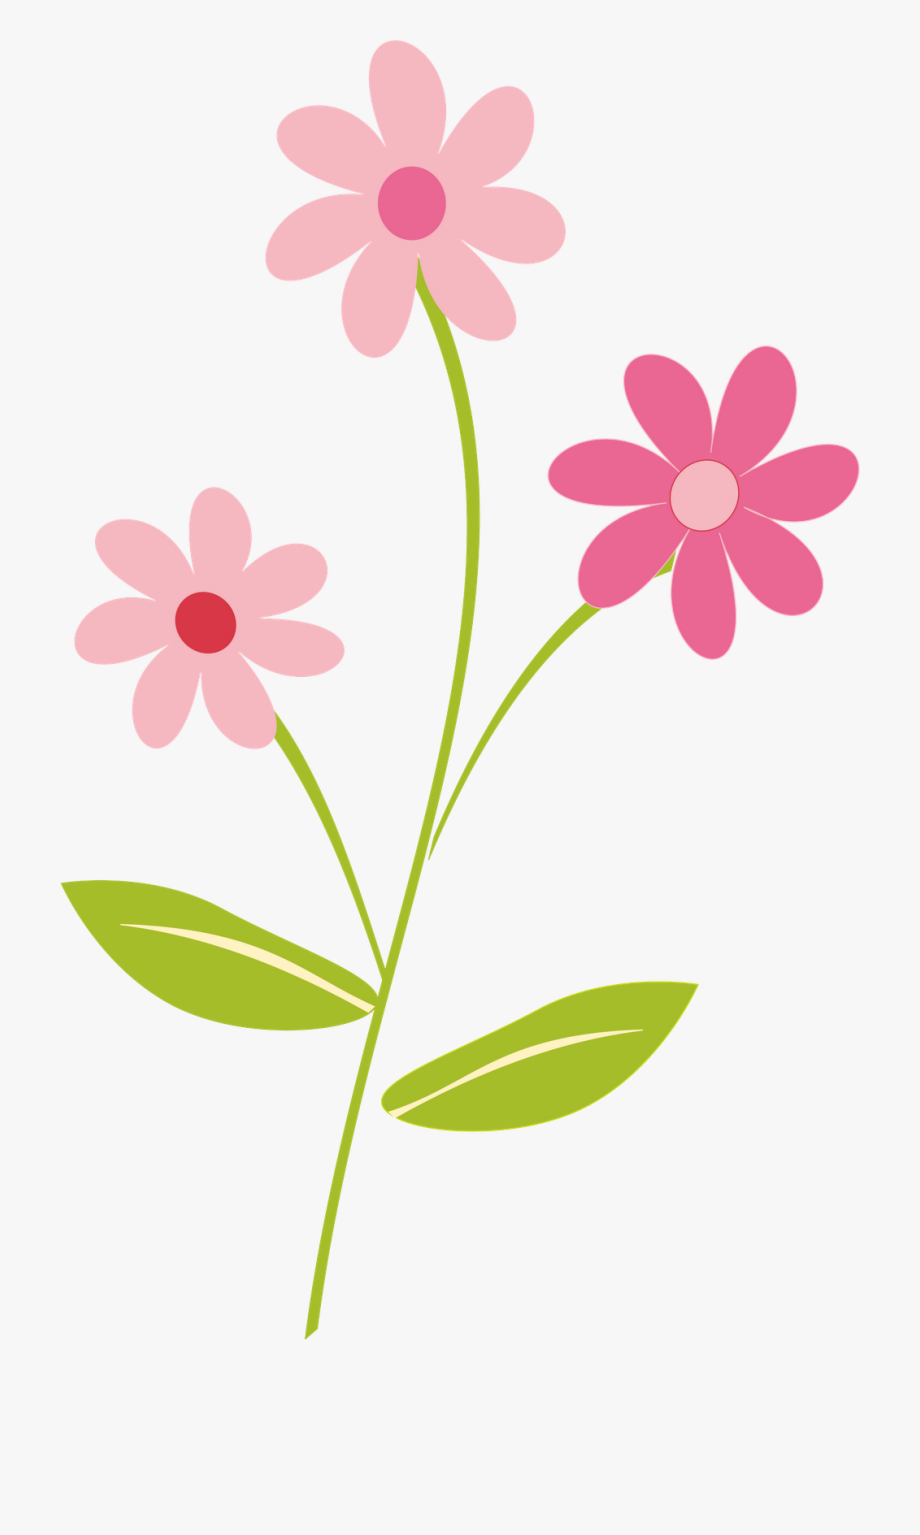 Clipart Of Pretty, Flower And Floral